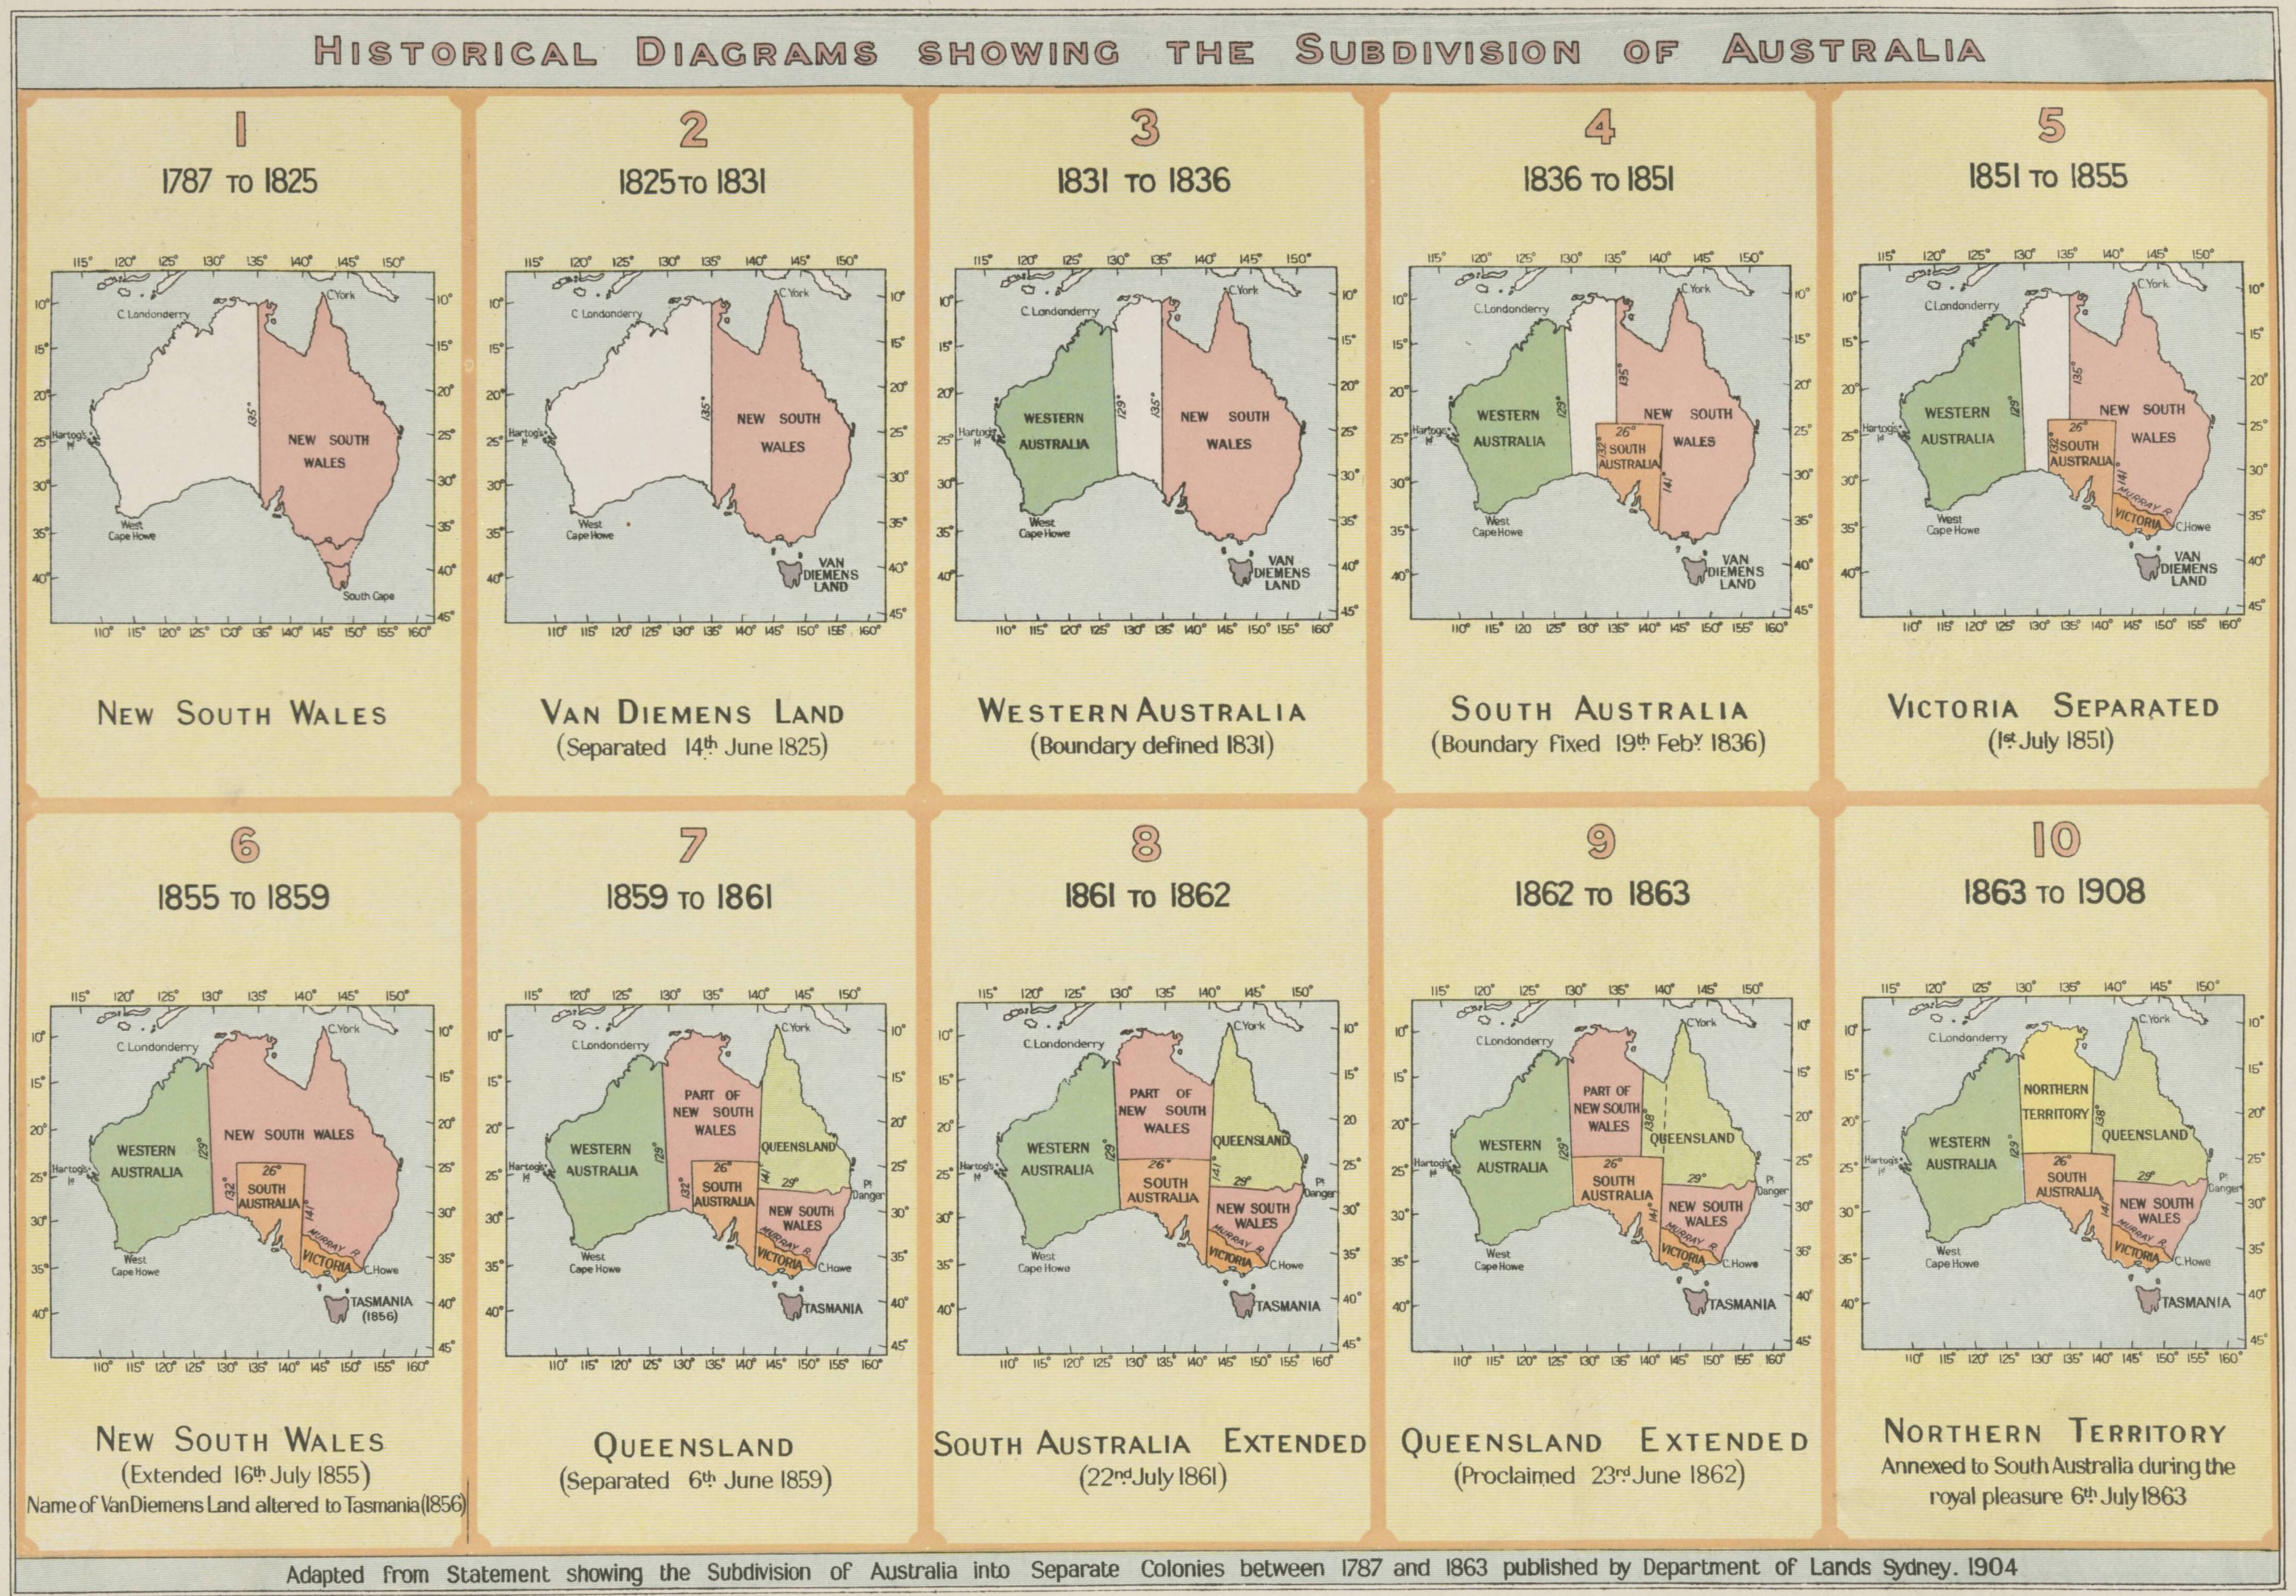 the map dating from 1904 shows the evolution of nsw and the nameless other half of the country to australia